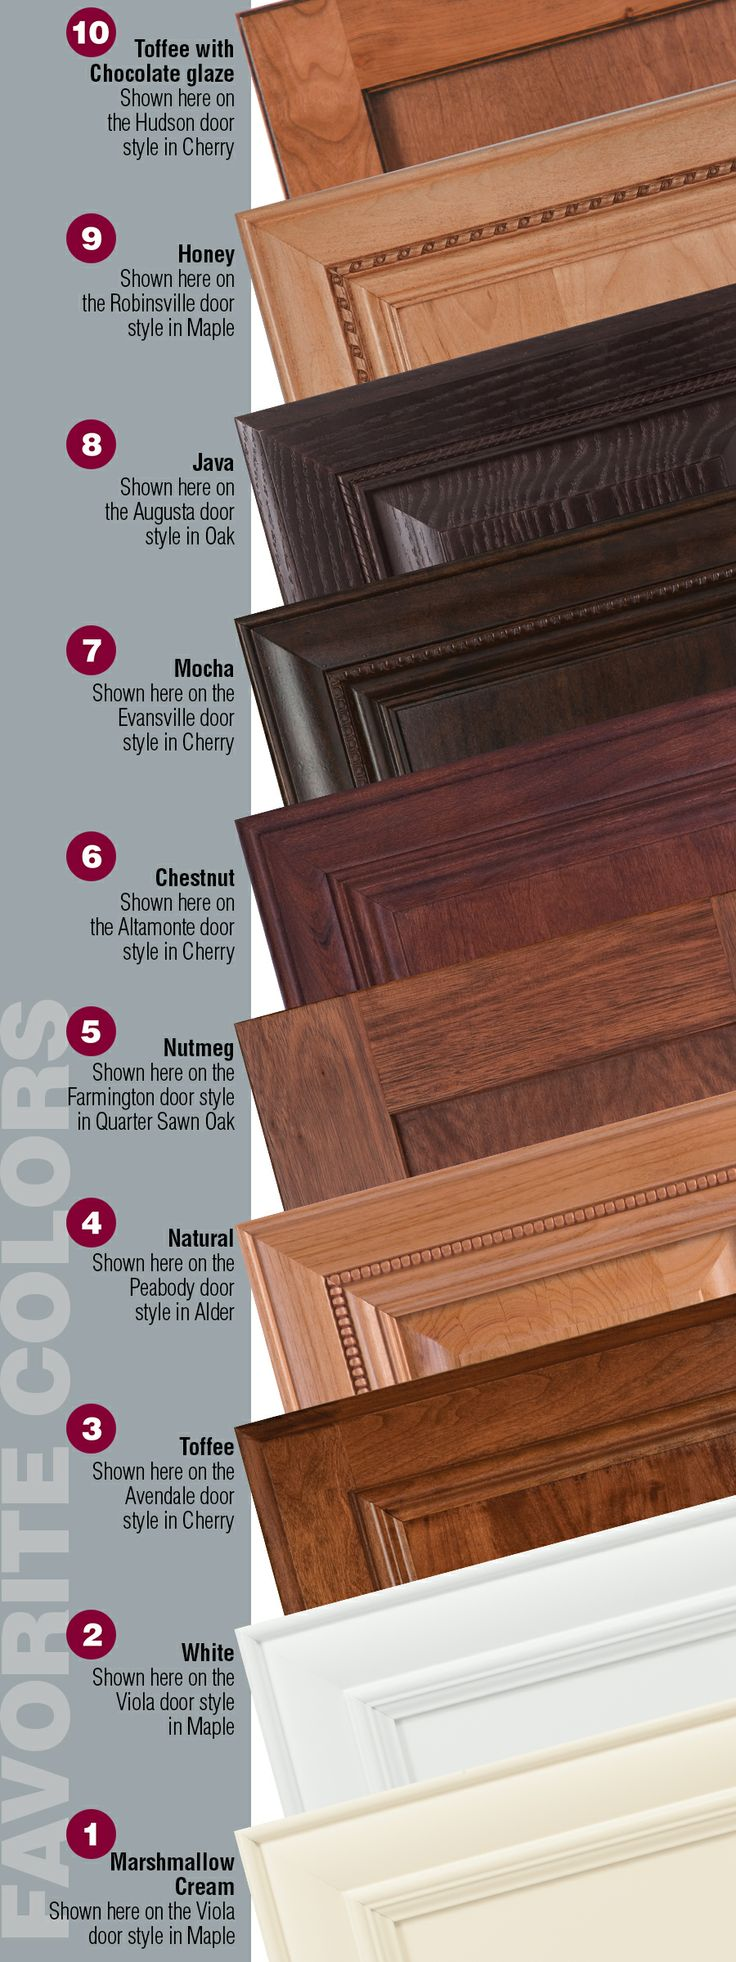 StarMark Cabinetry Has Over 600,000 Combinations Of Colors And Styles Are  Ready To Be Discovered.